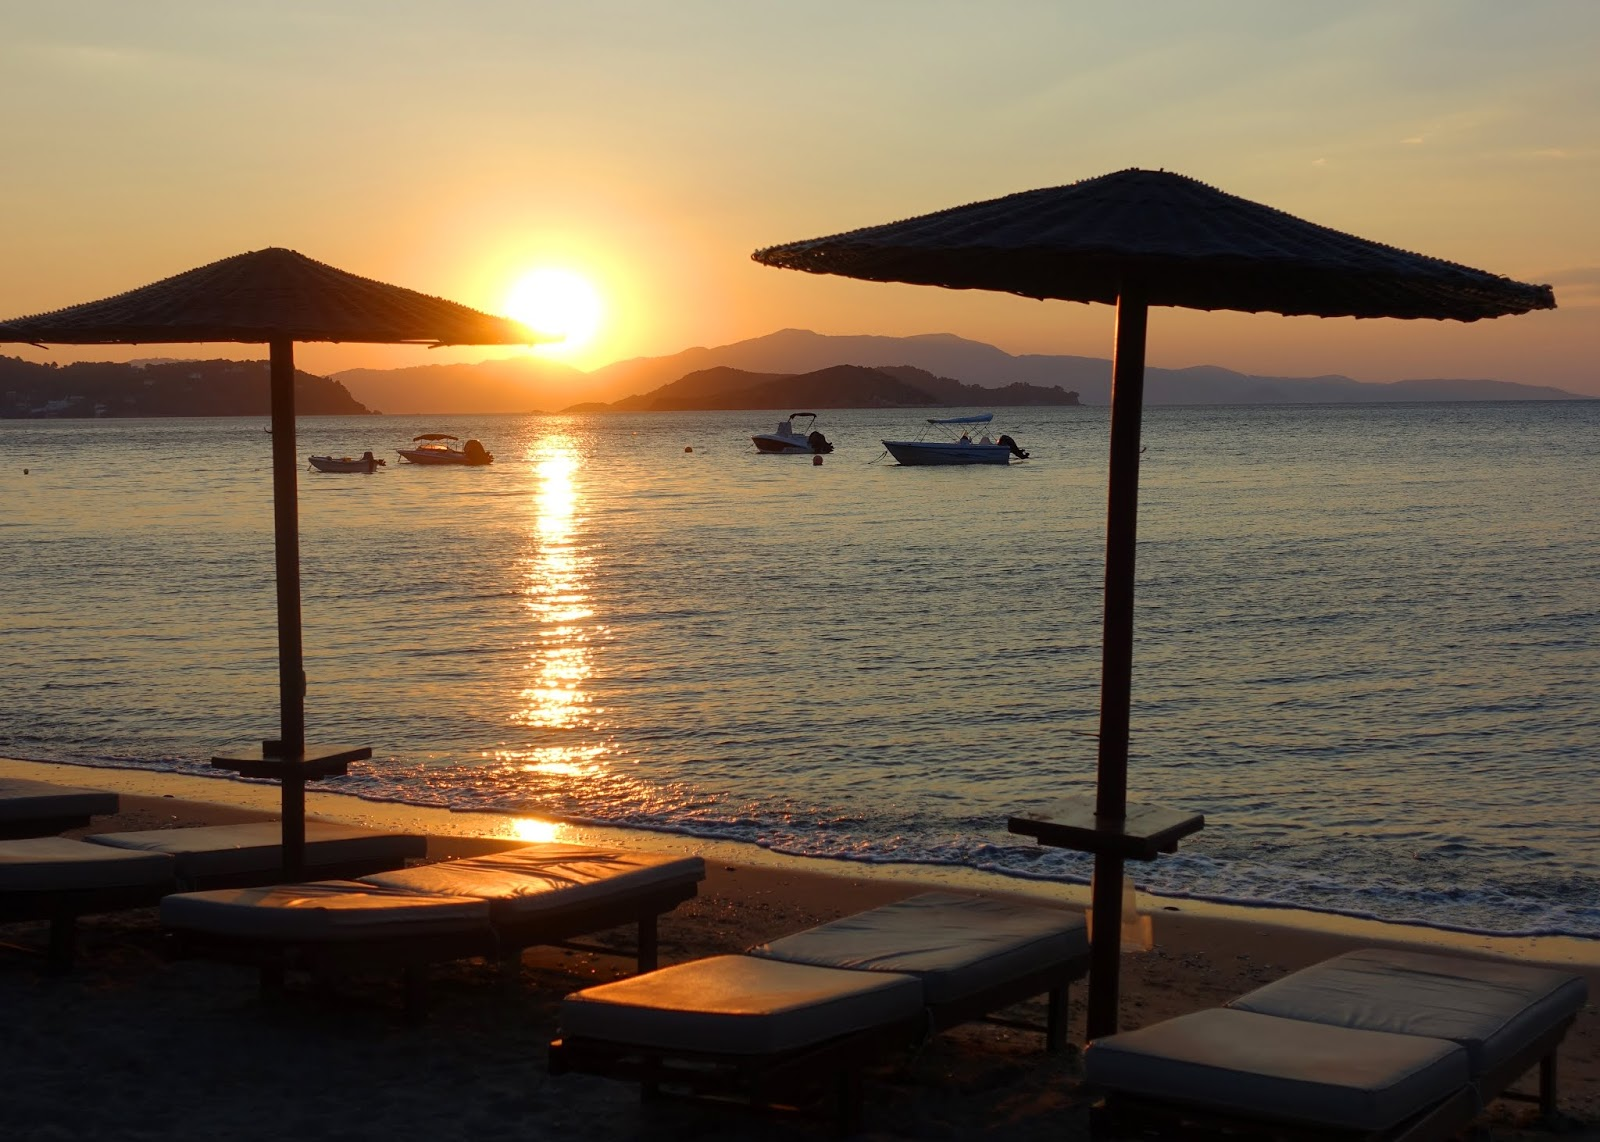 Sun rise over the sea and a beach at Skiathos, Greece